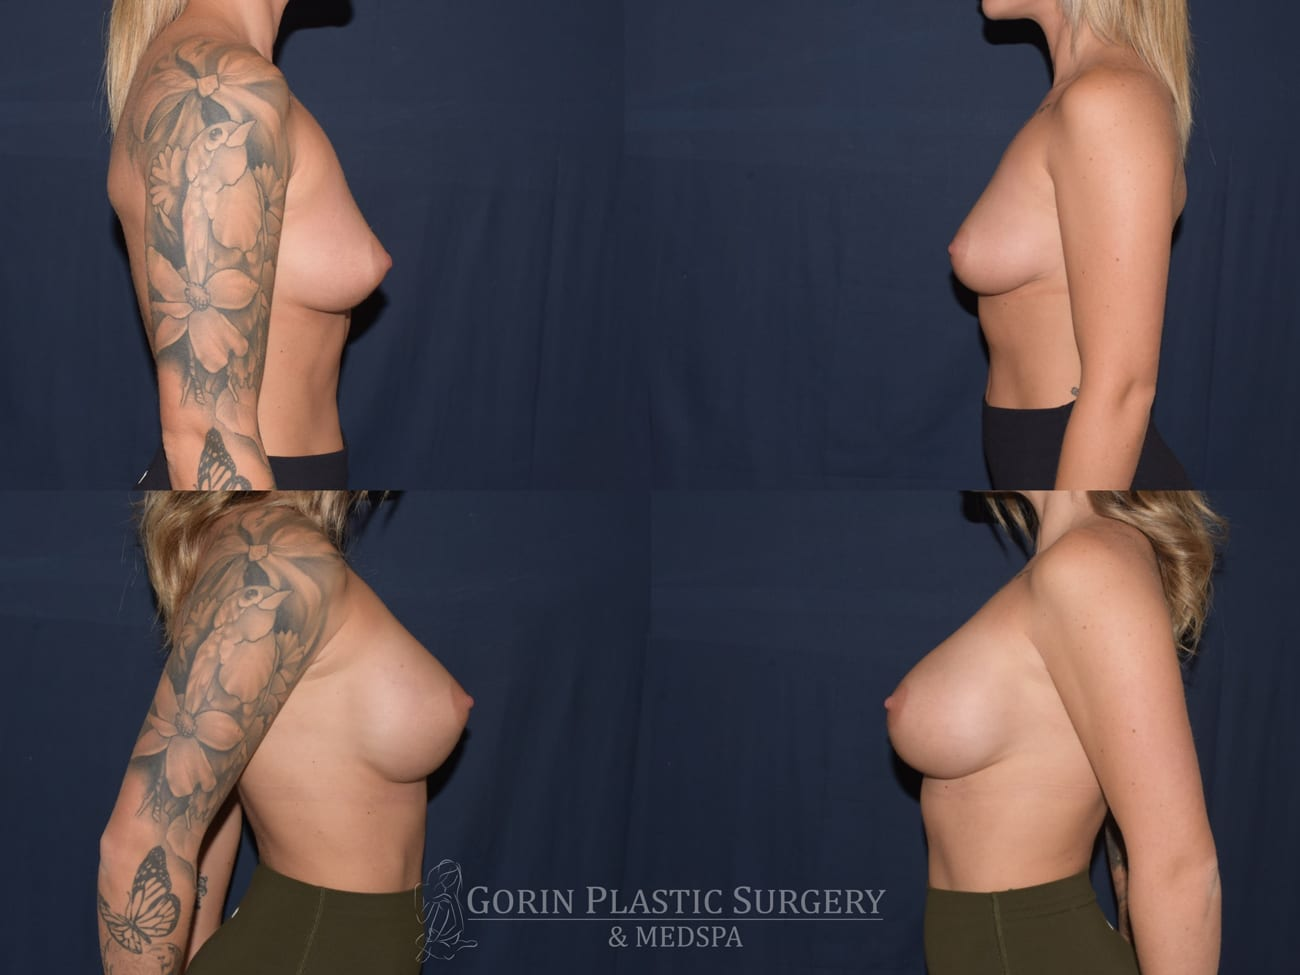 breast augmentation patient 5 side before and after photo